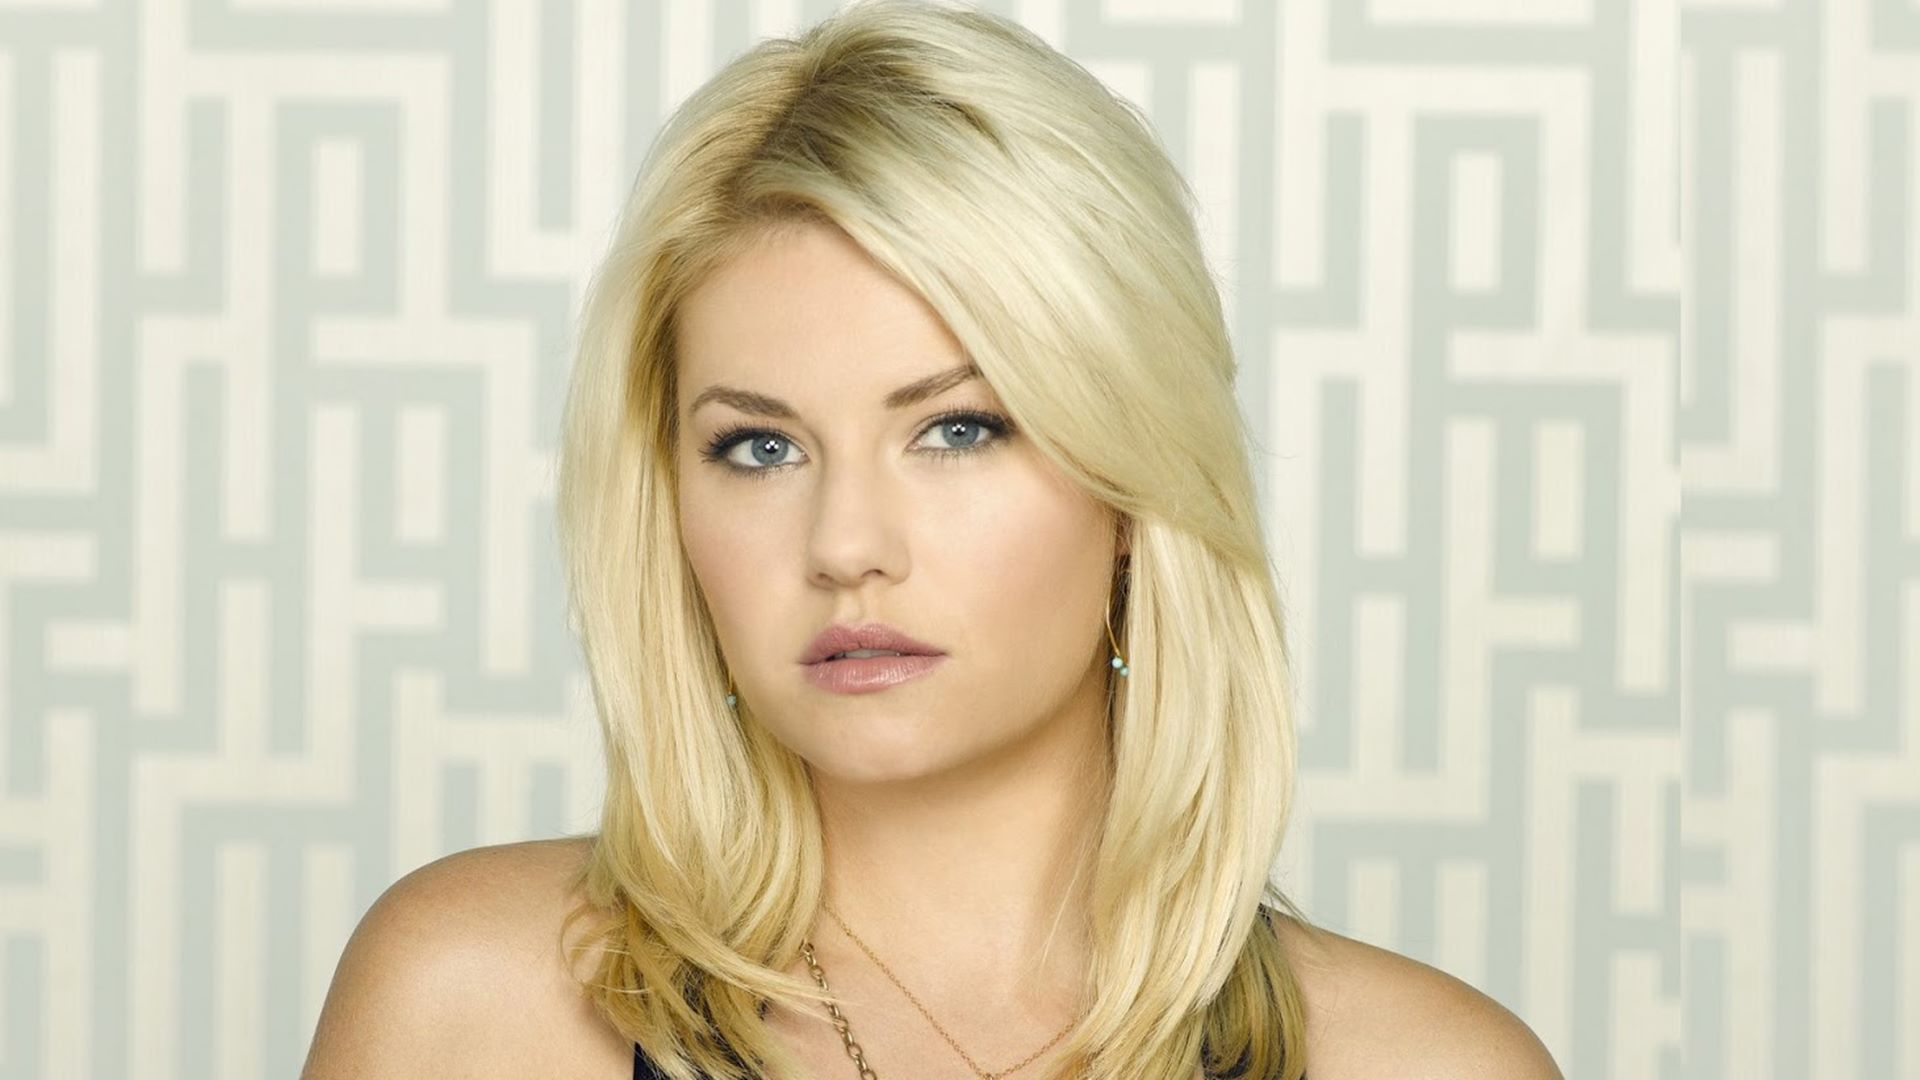 Hd Beautiful Elisha Cuthbert Wallpaper Download